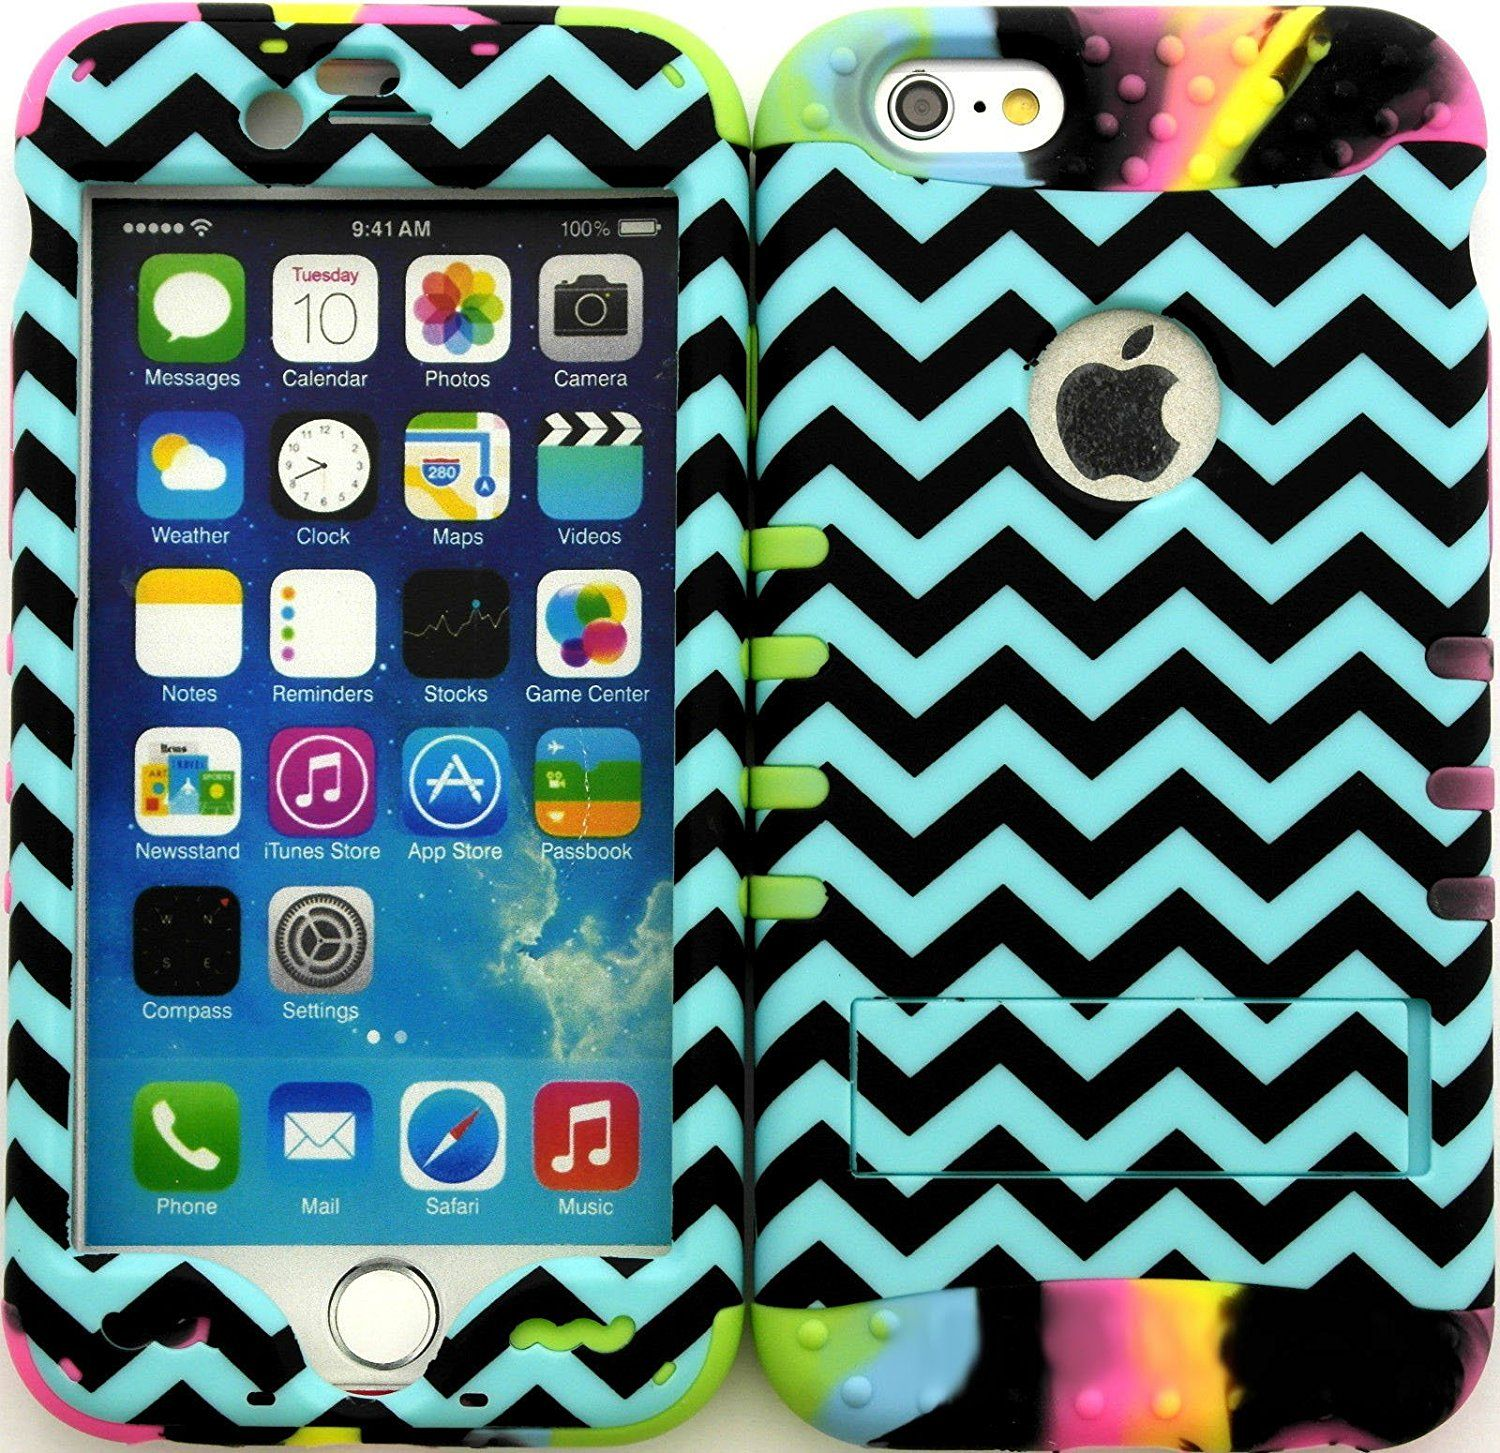 """Amazon.com: Teal, Black and Rainbow """"Zigzag Chevron Stripes with Non-Slip Grip Texture"""" 3 Piece Layered ULTRA Tuff Custom Armored Hybrid Case for the NEW iPhone 6 Plus 5.5"""" Inch Smartphone by Apple {Made of Soft Silicone Gel and Hard Rubberized Plastic with External Built in Kickstand} """"All Ports Accessible"""": Cell Phones & Accessories"""